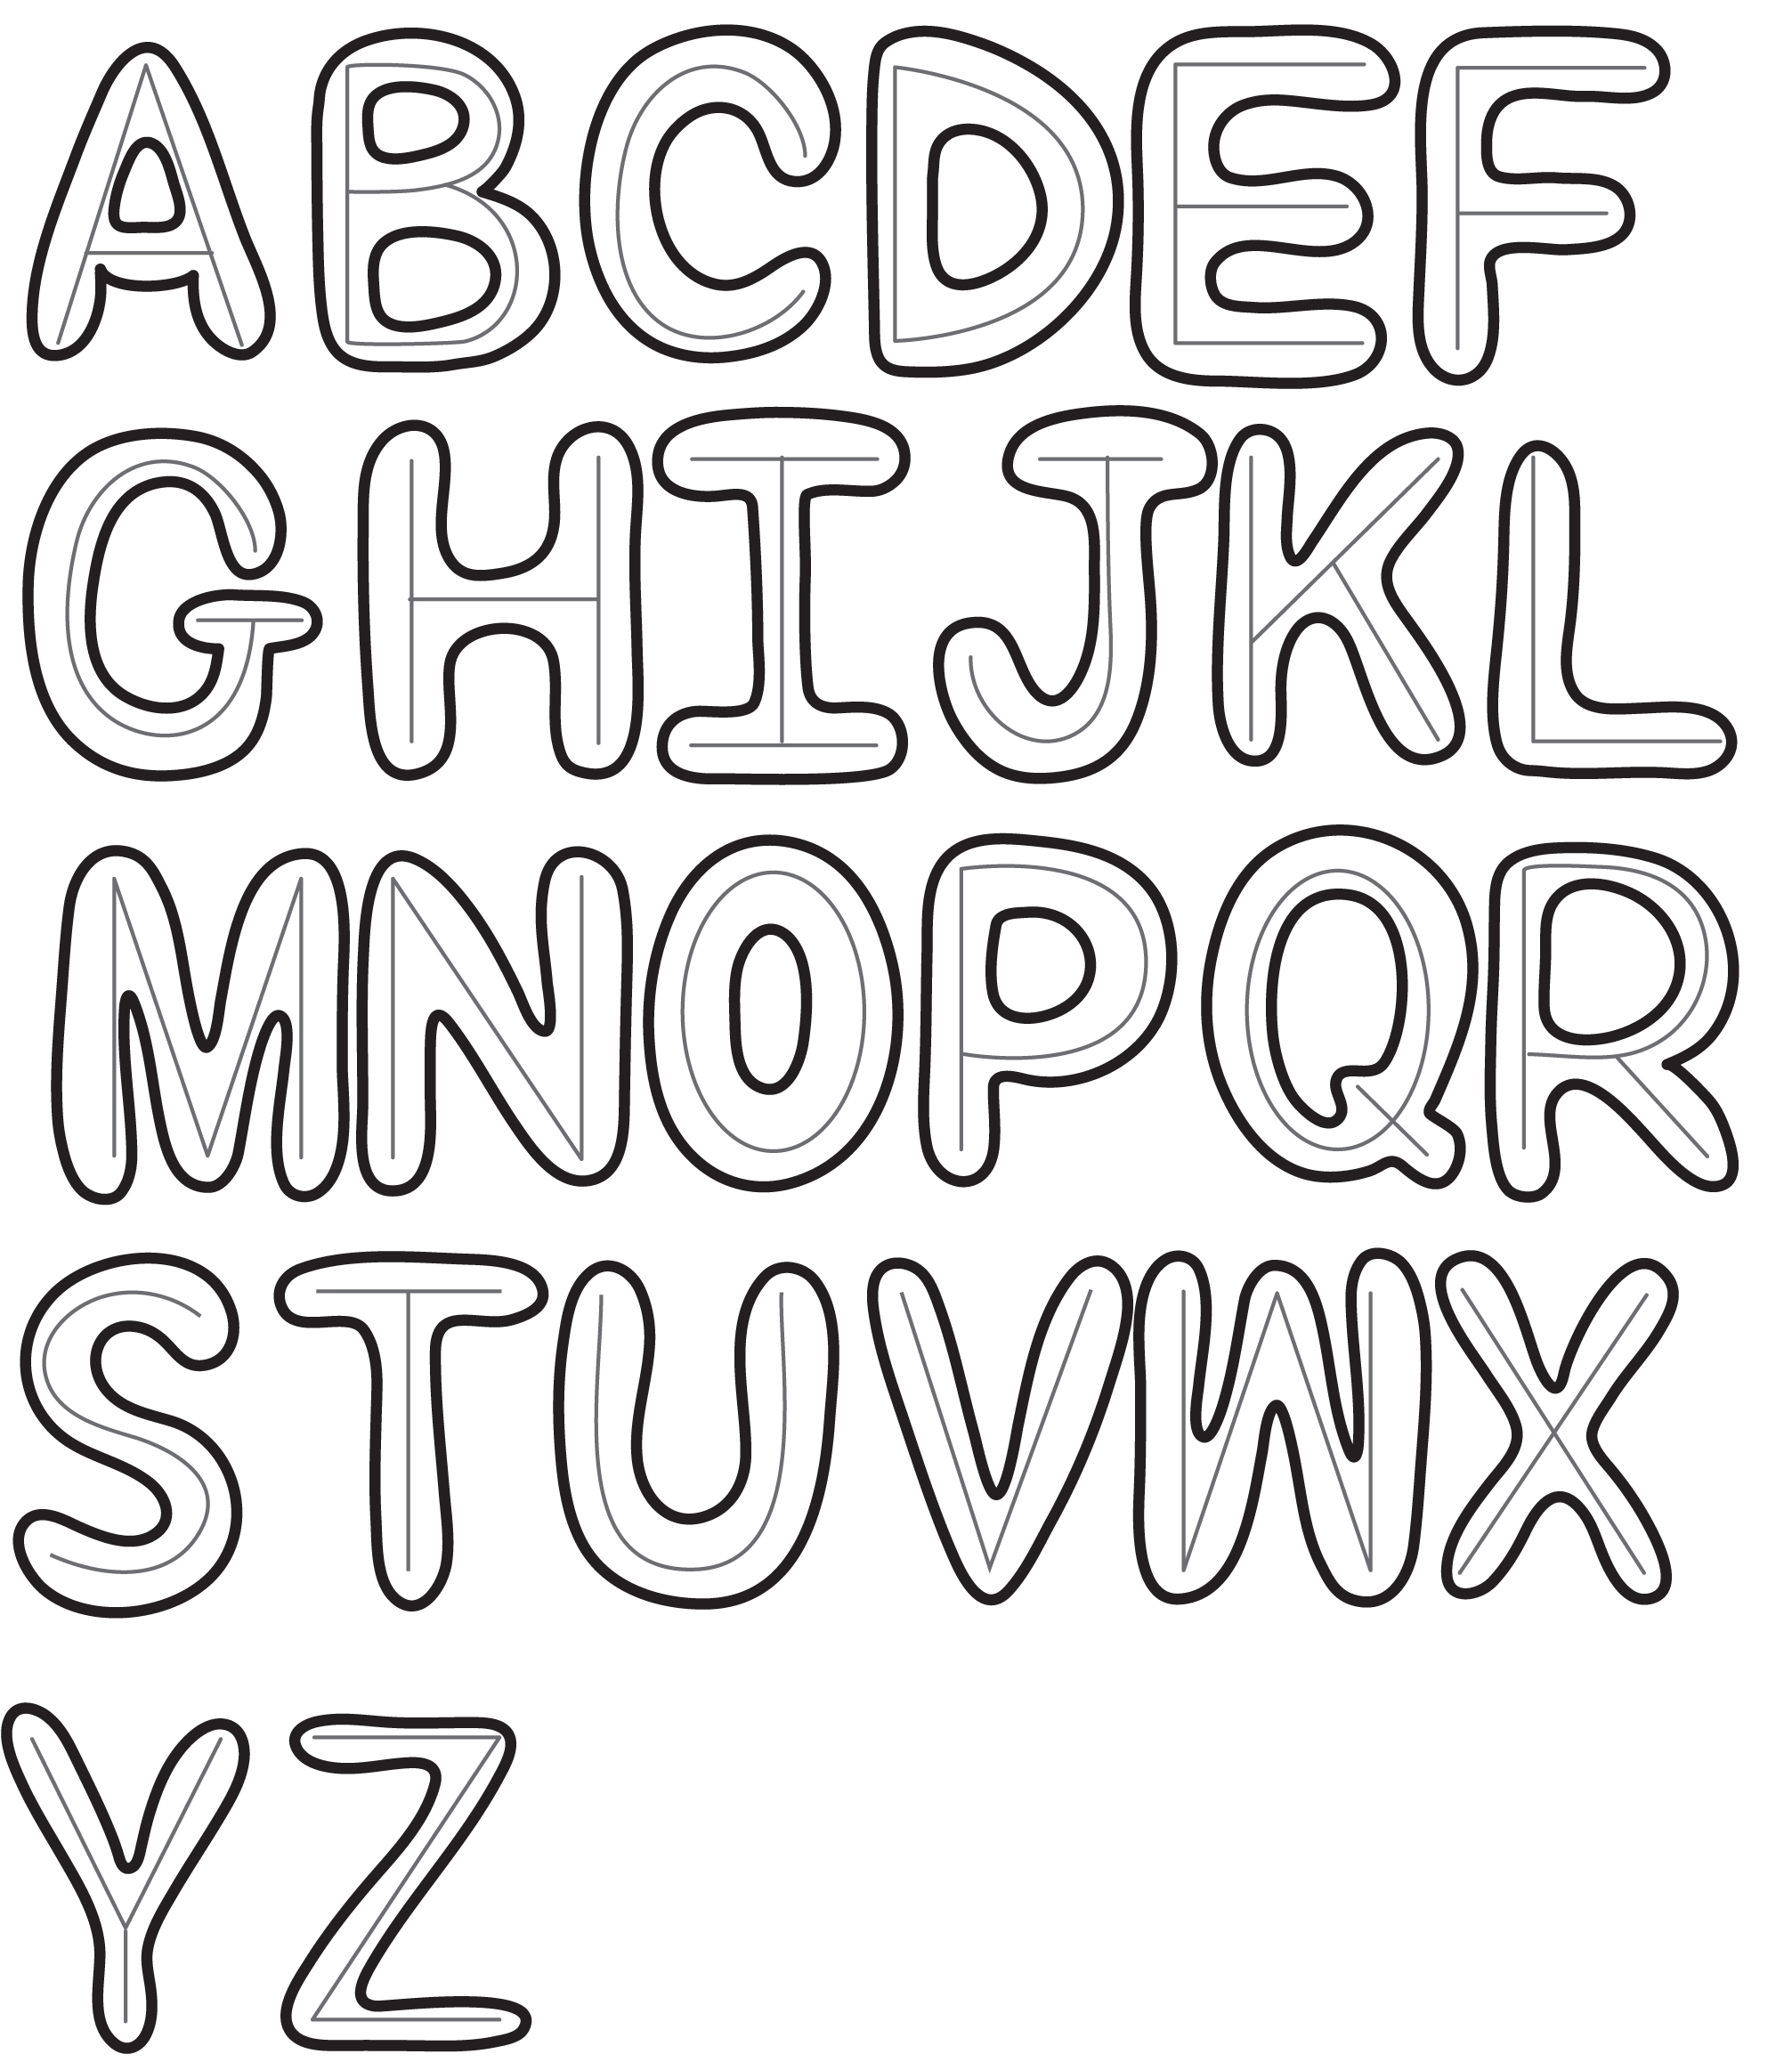 2013x2316 Abc In Bubble Letters How To Draw Bubble Letters In Simple Steps